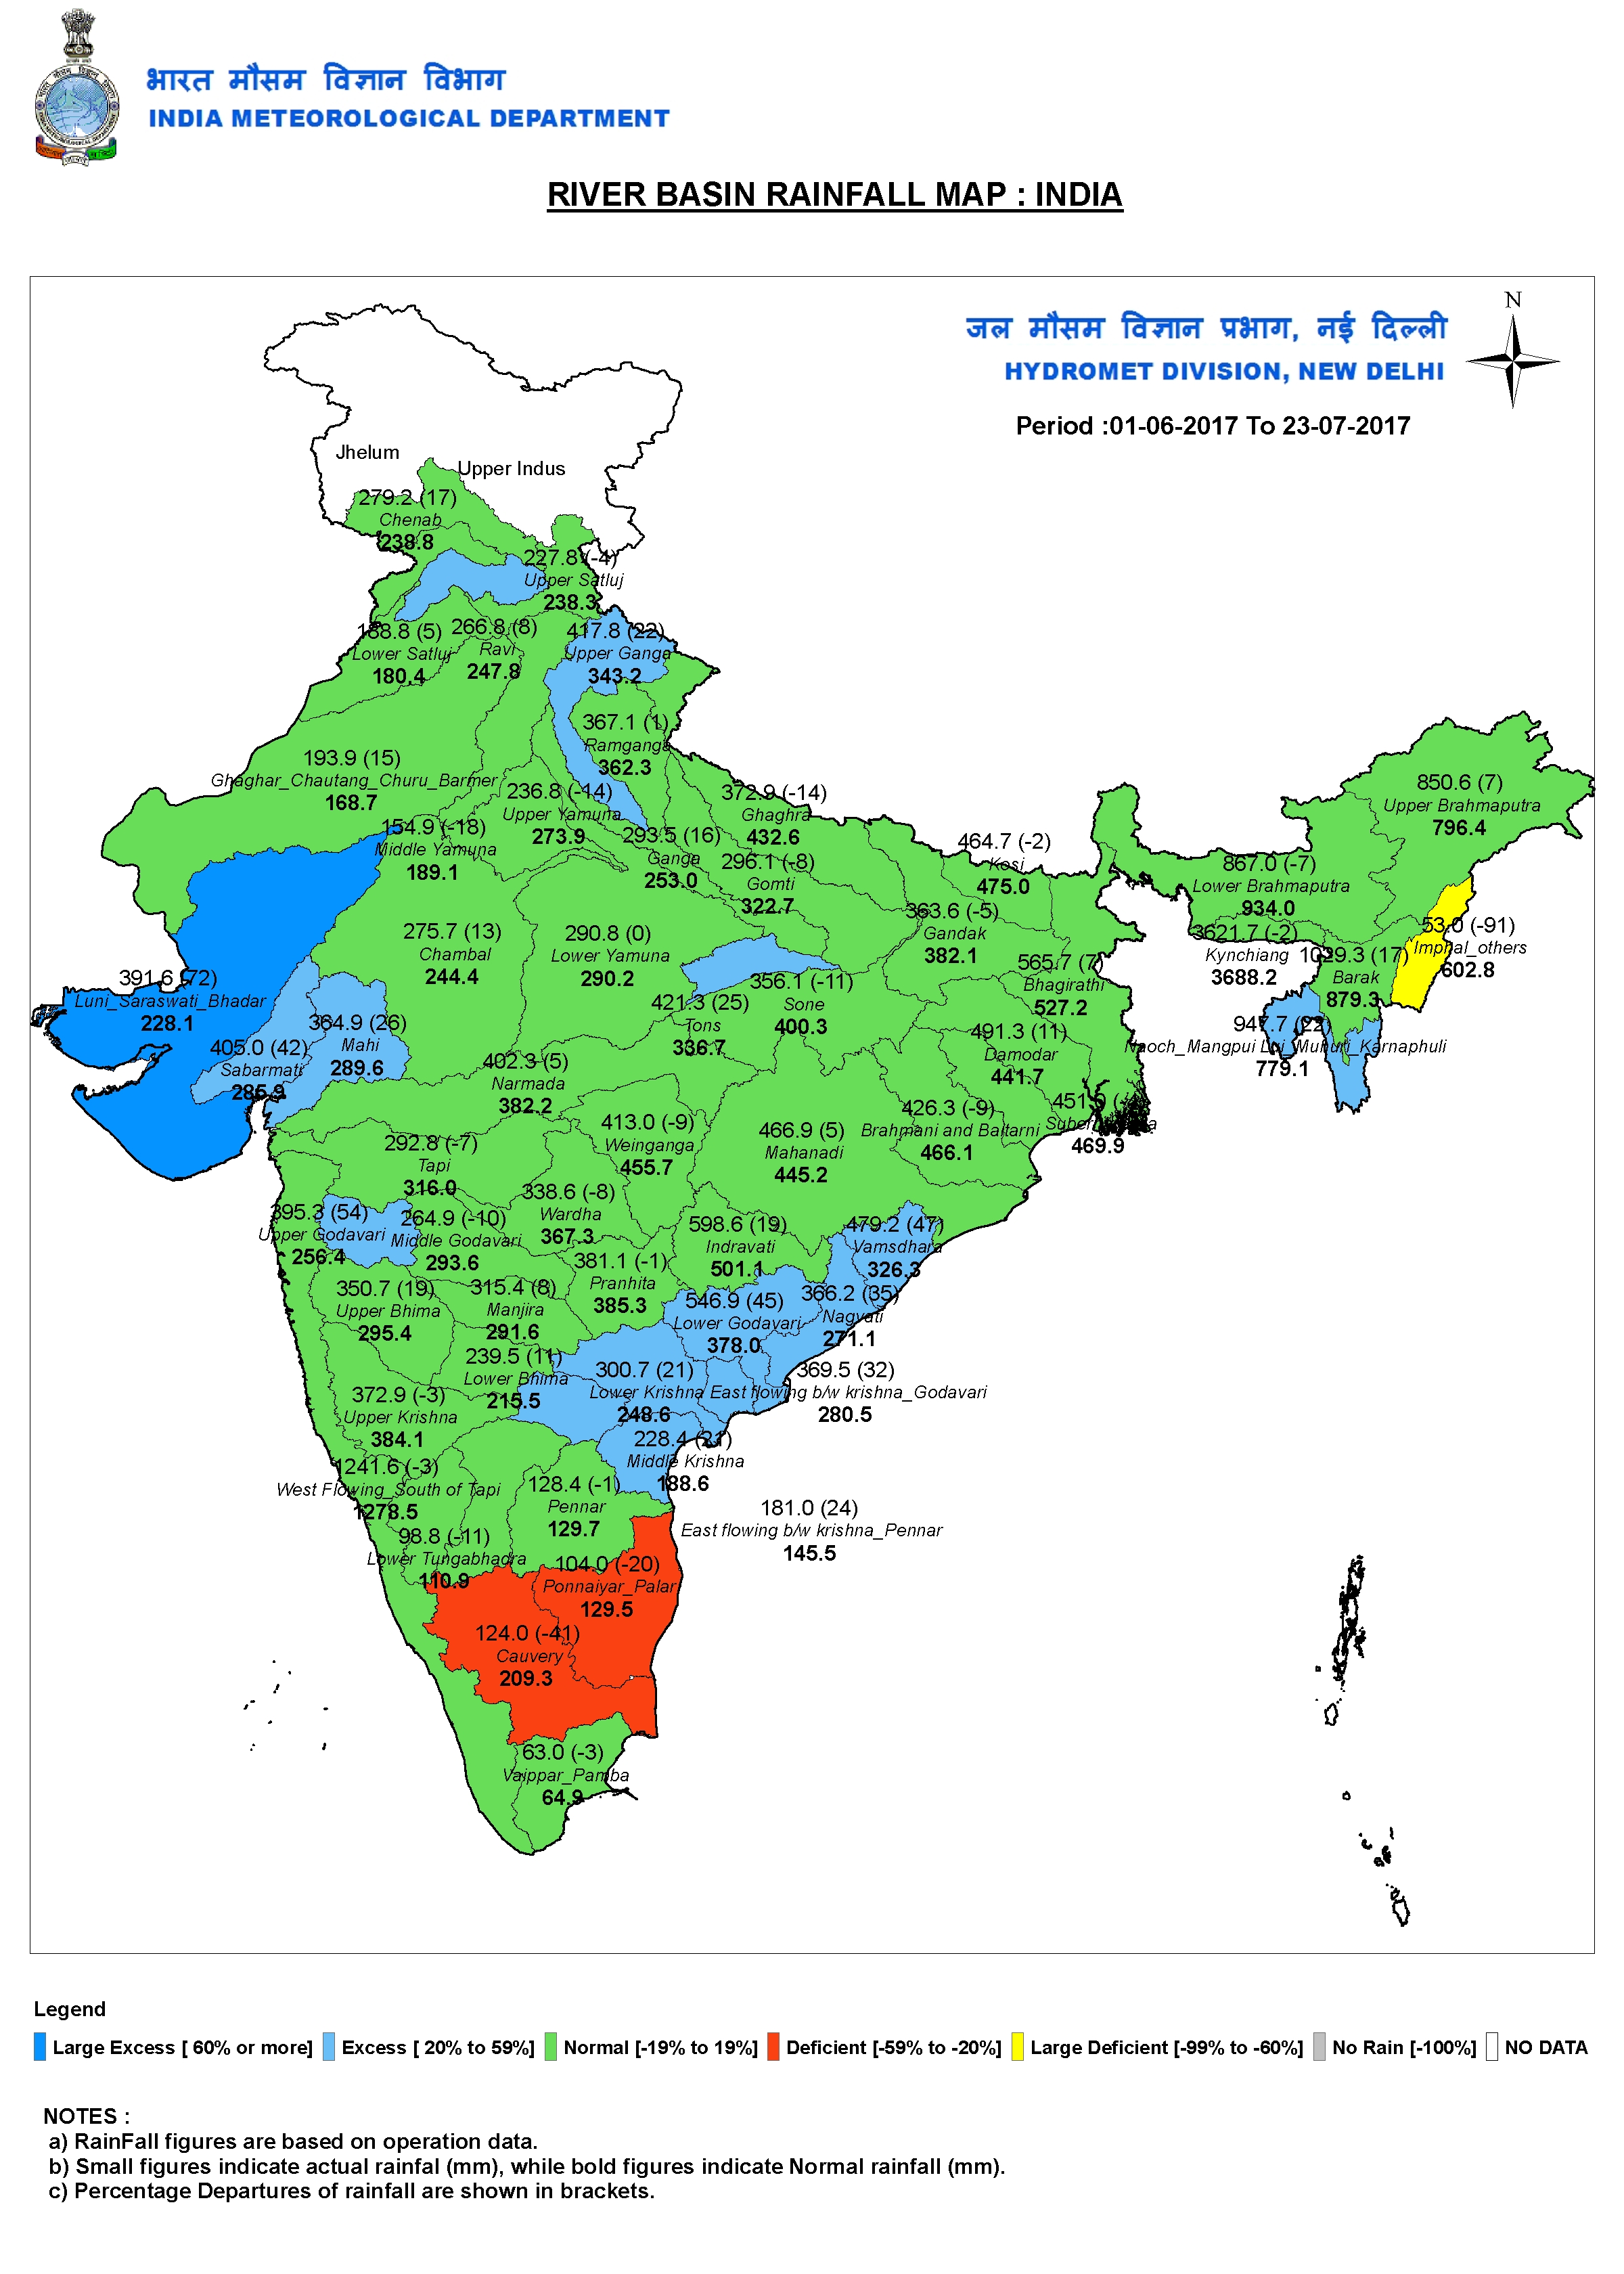 (Image credit: India Meteorological Department).